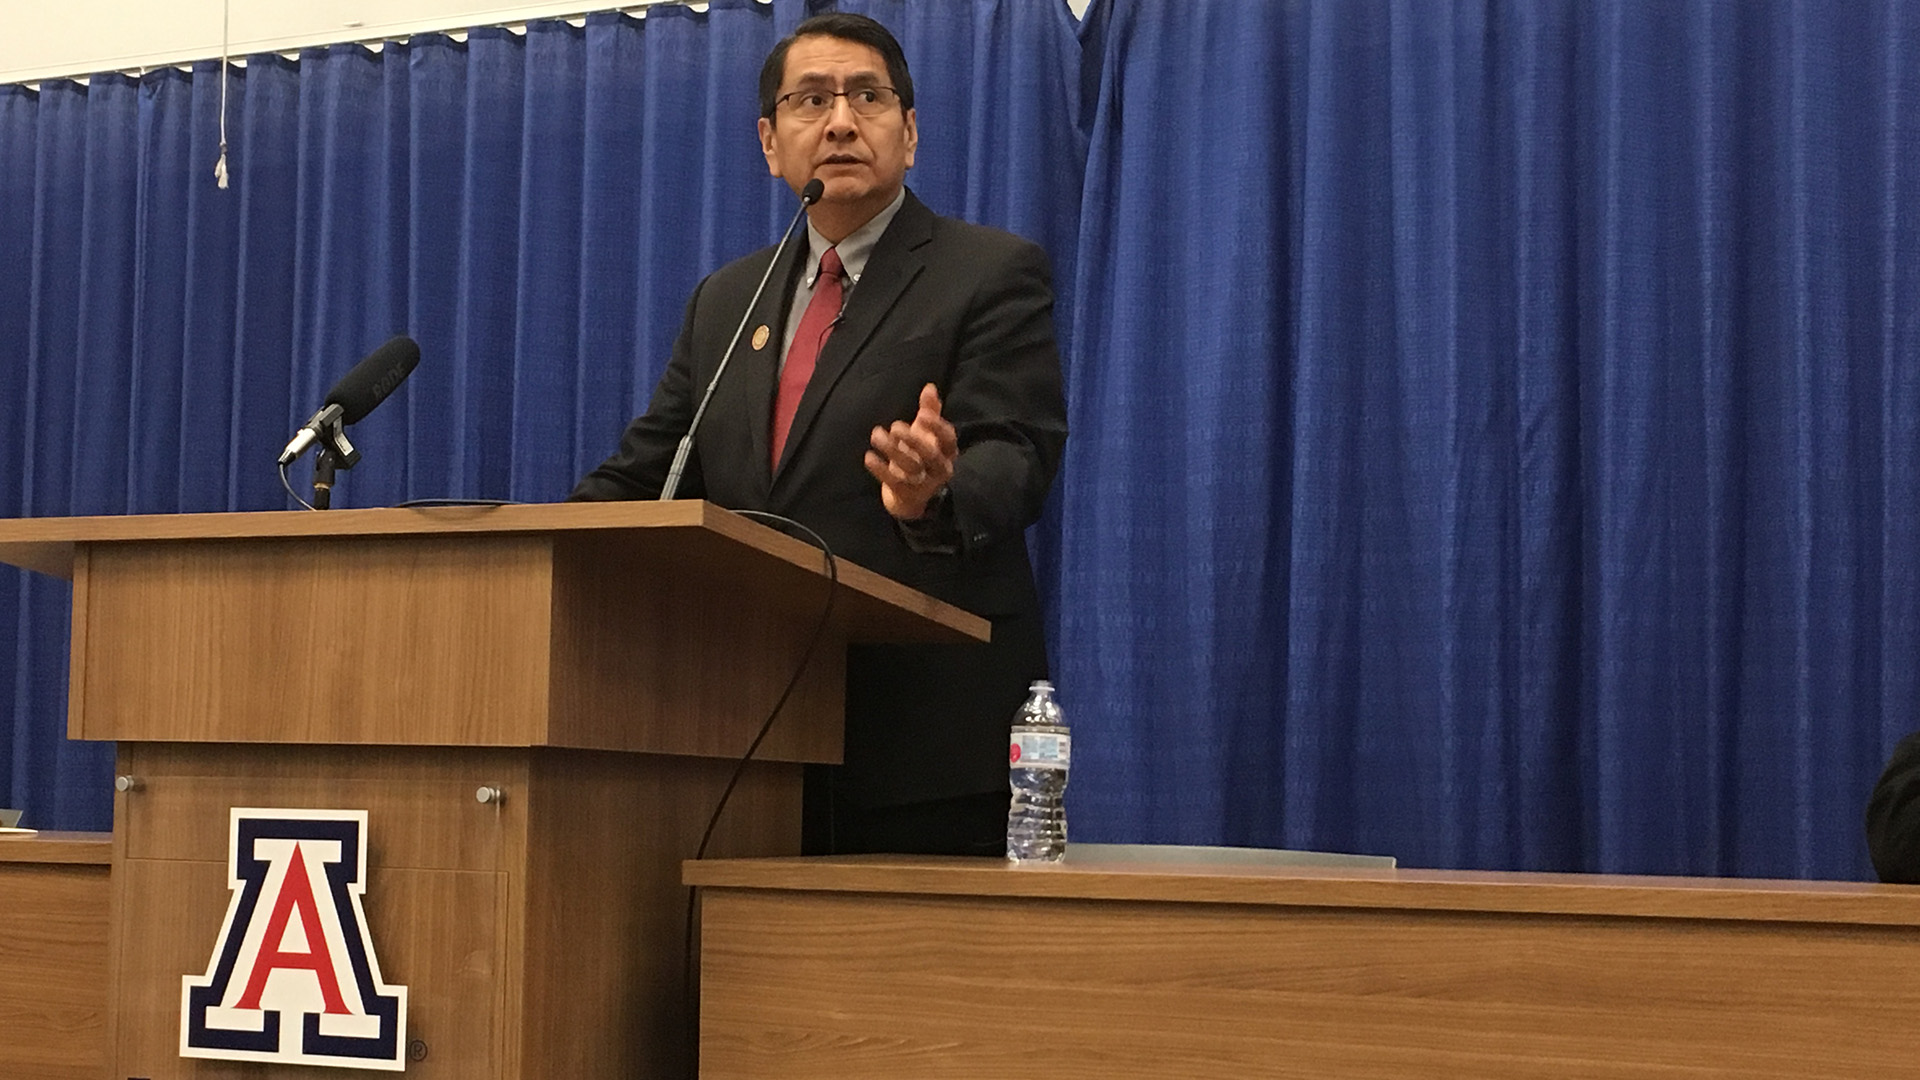 Navajo Nation President Jonathan Nez speaking to law students about the importance of nation building at the James E. Rogers College of Law, Tuesday, Dec. 3, 2019.